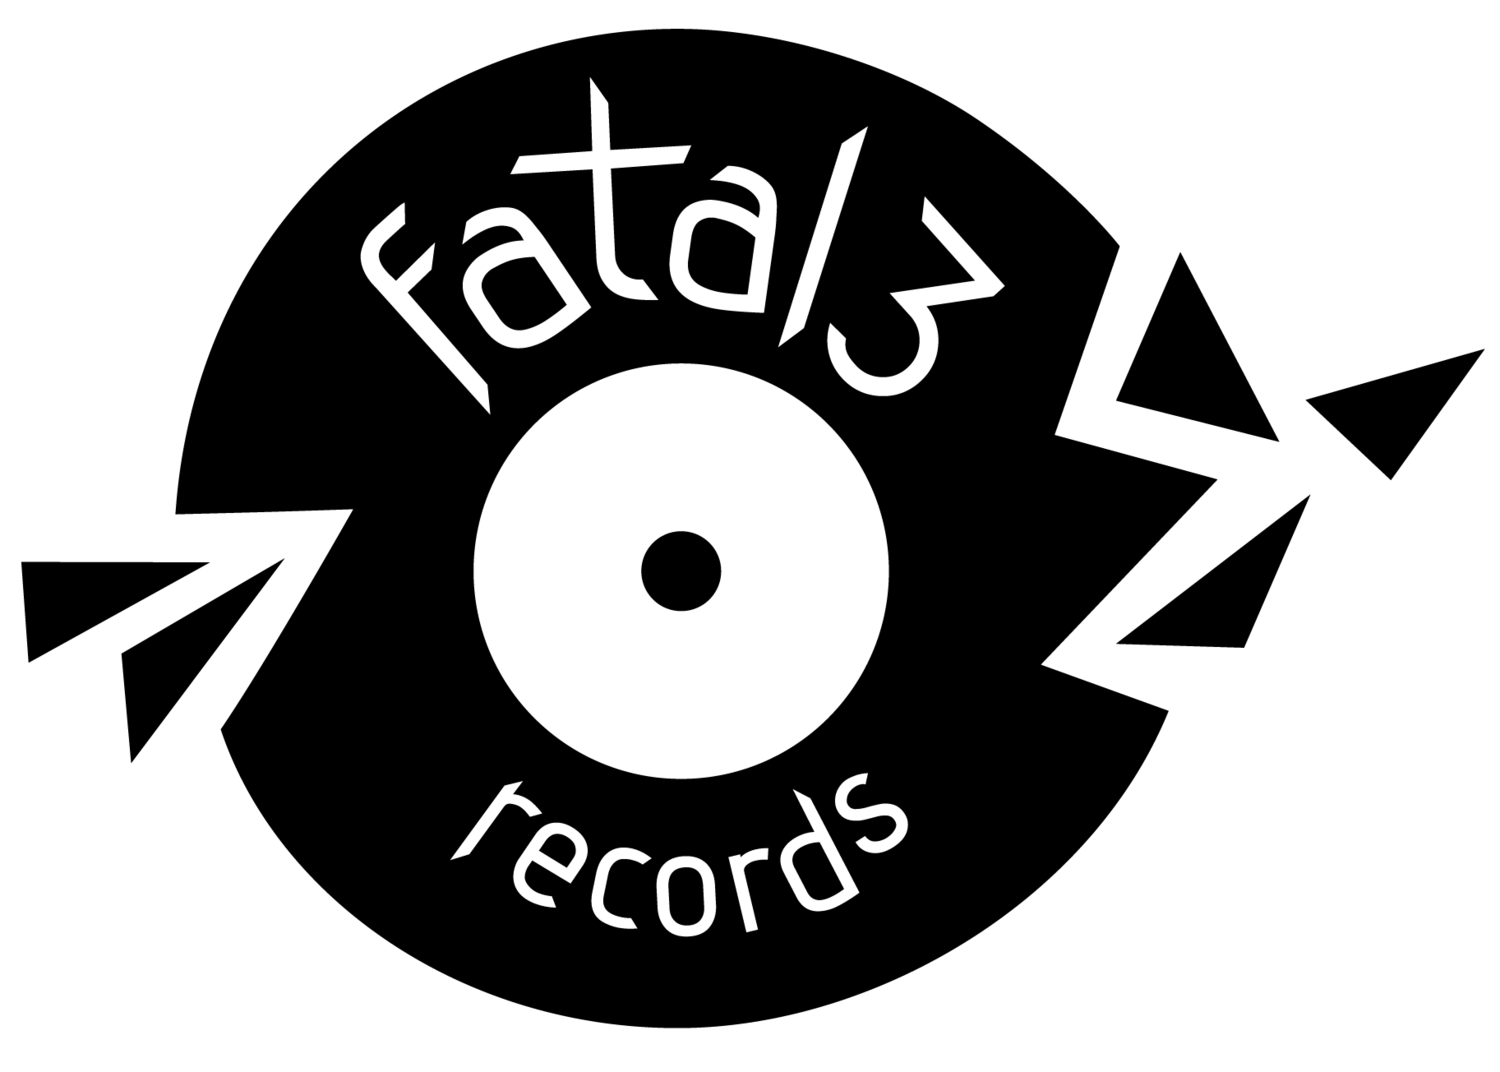 Fatal 3 Records